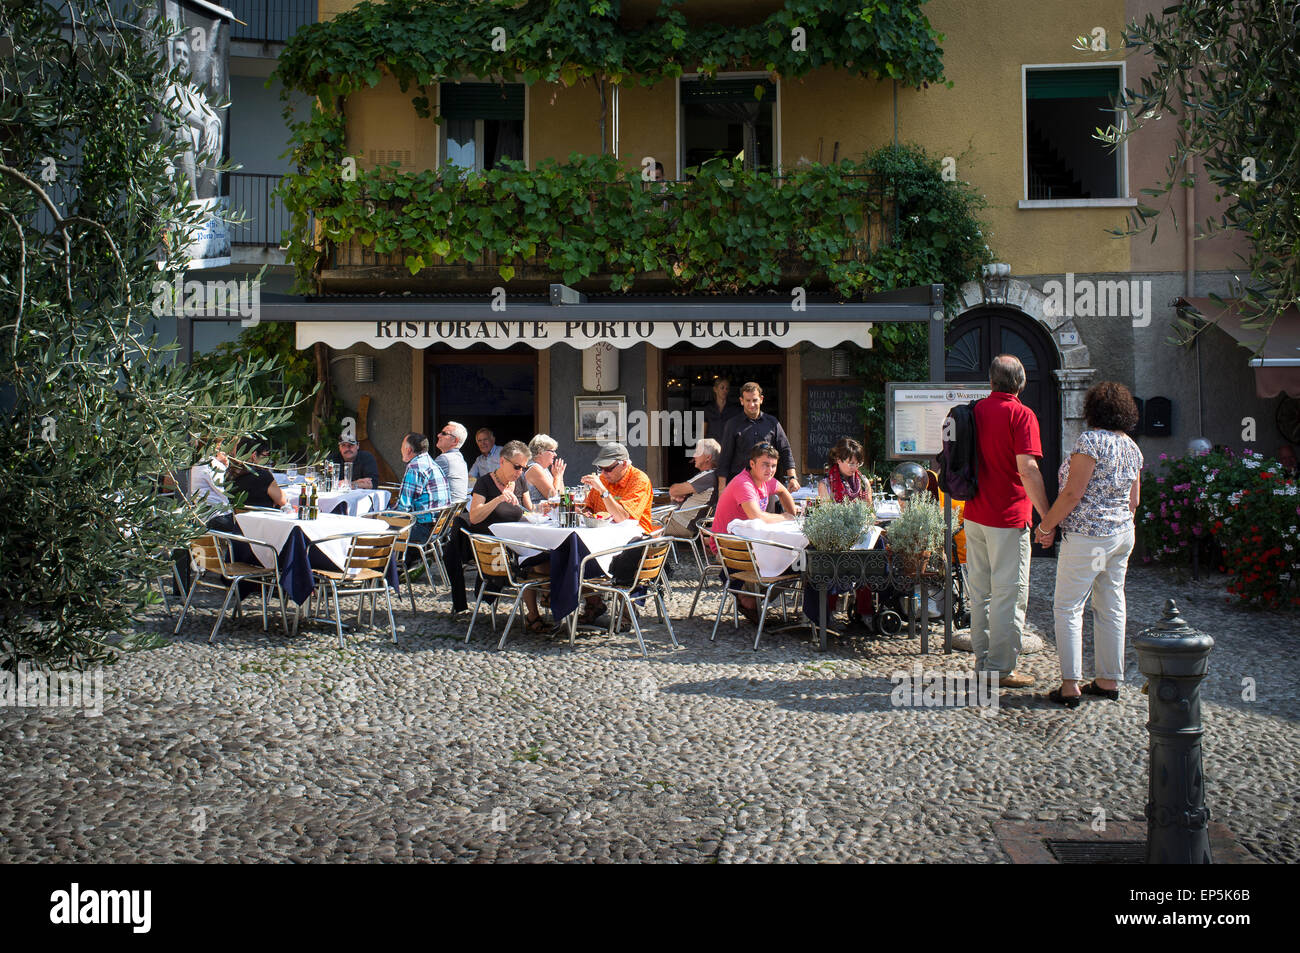 People enjoying dining al fresco outside a small restuarant in Malcesine, Lake Garda, Italy. - Stock Image